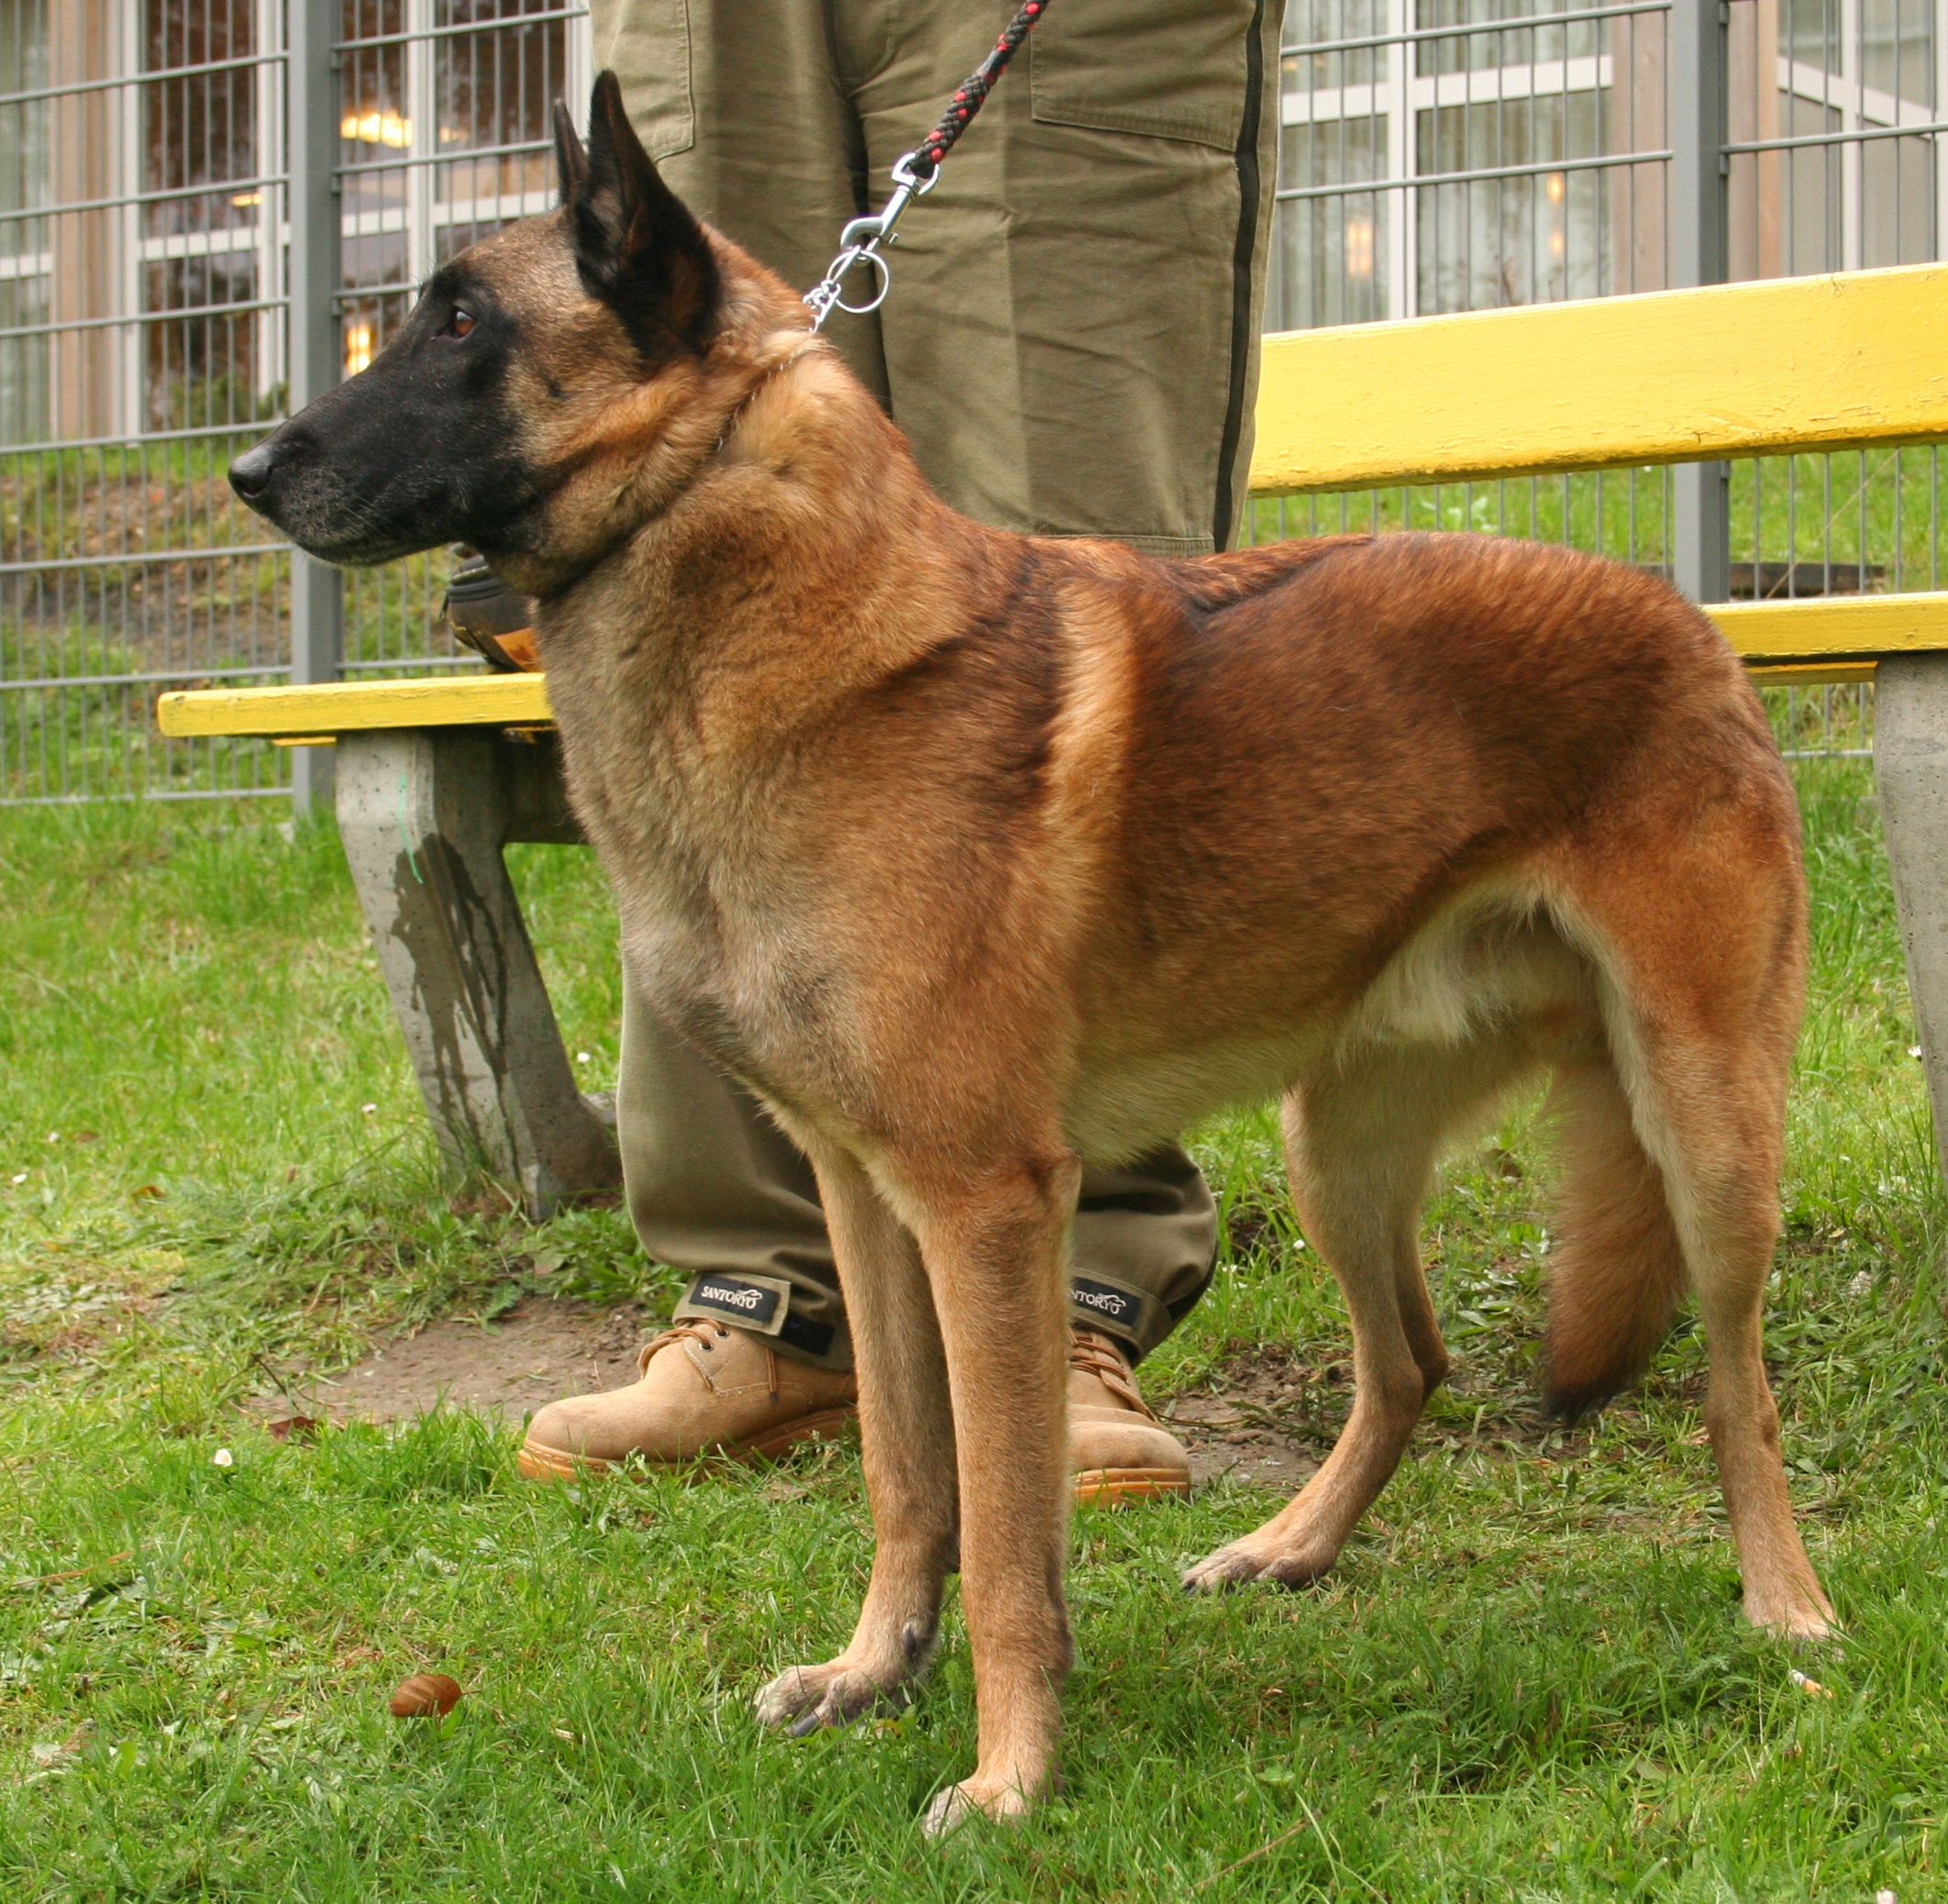 http://upload.wikimedia.org/wikipedia/commons/6/69/Malinois_rybnik-kamien_pl.jpg